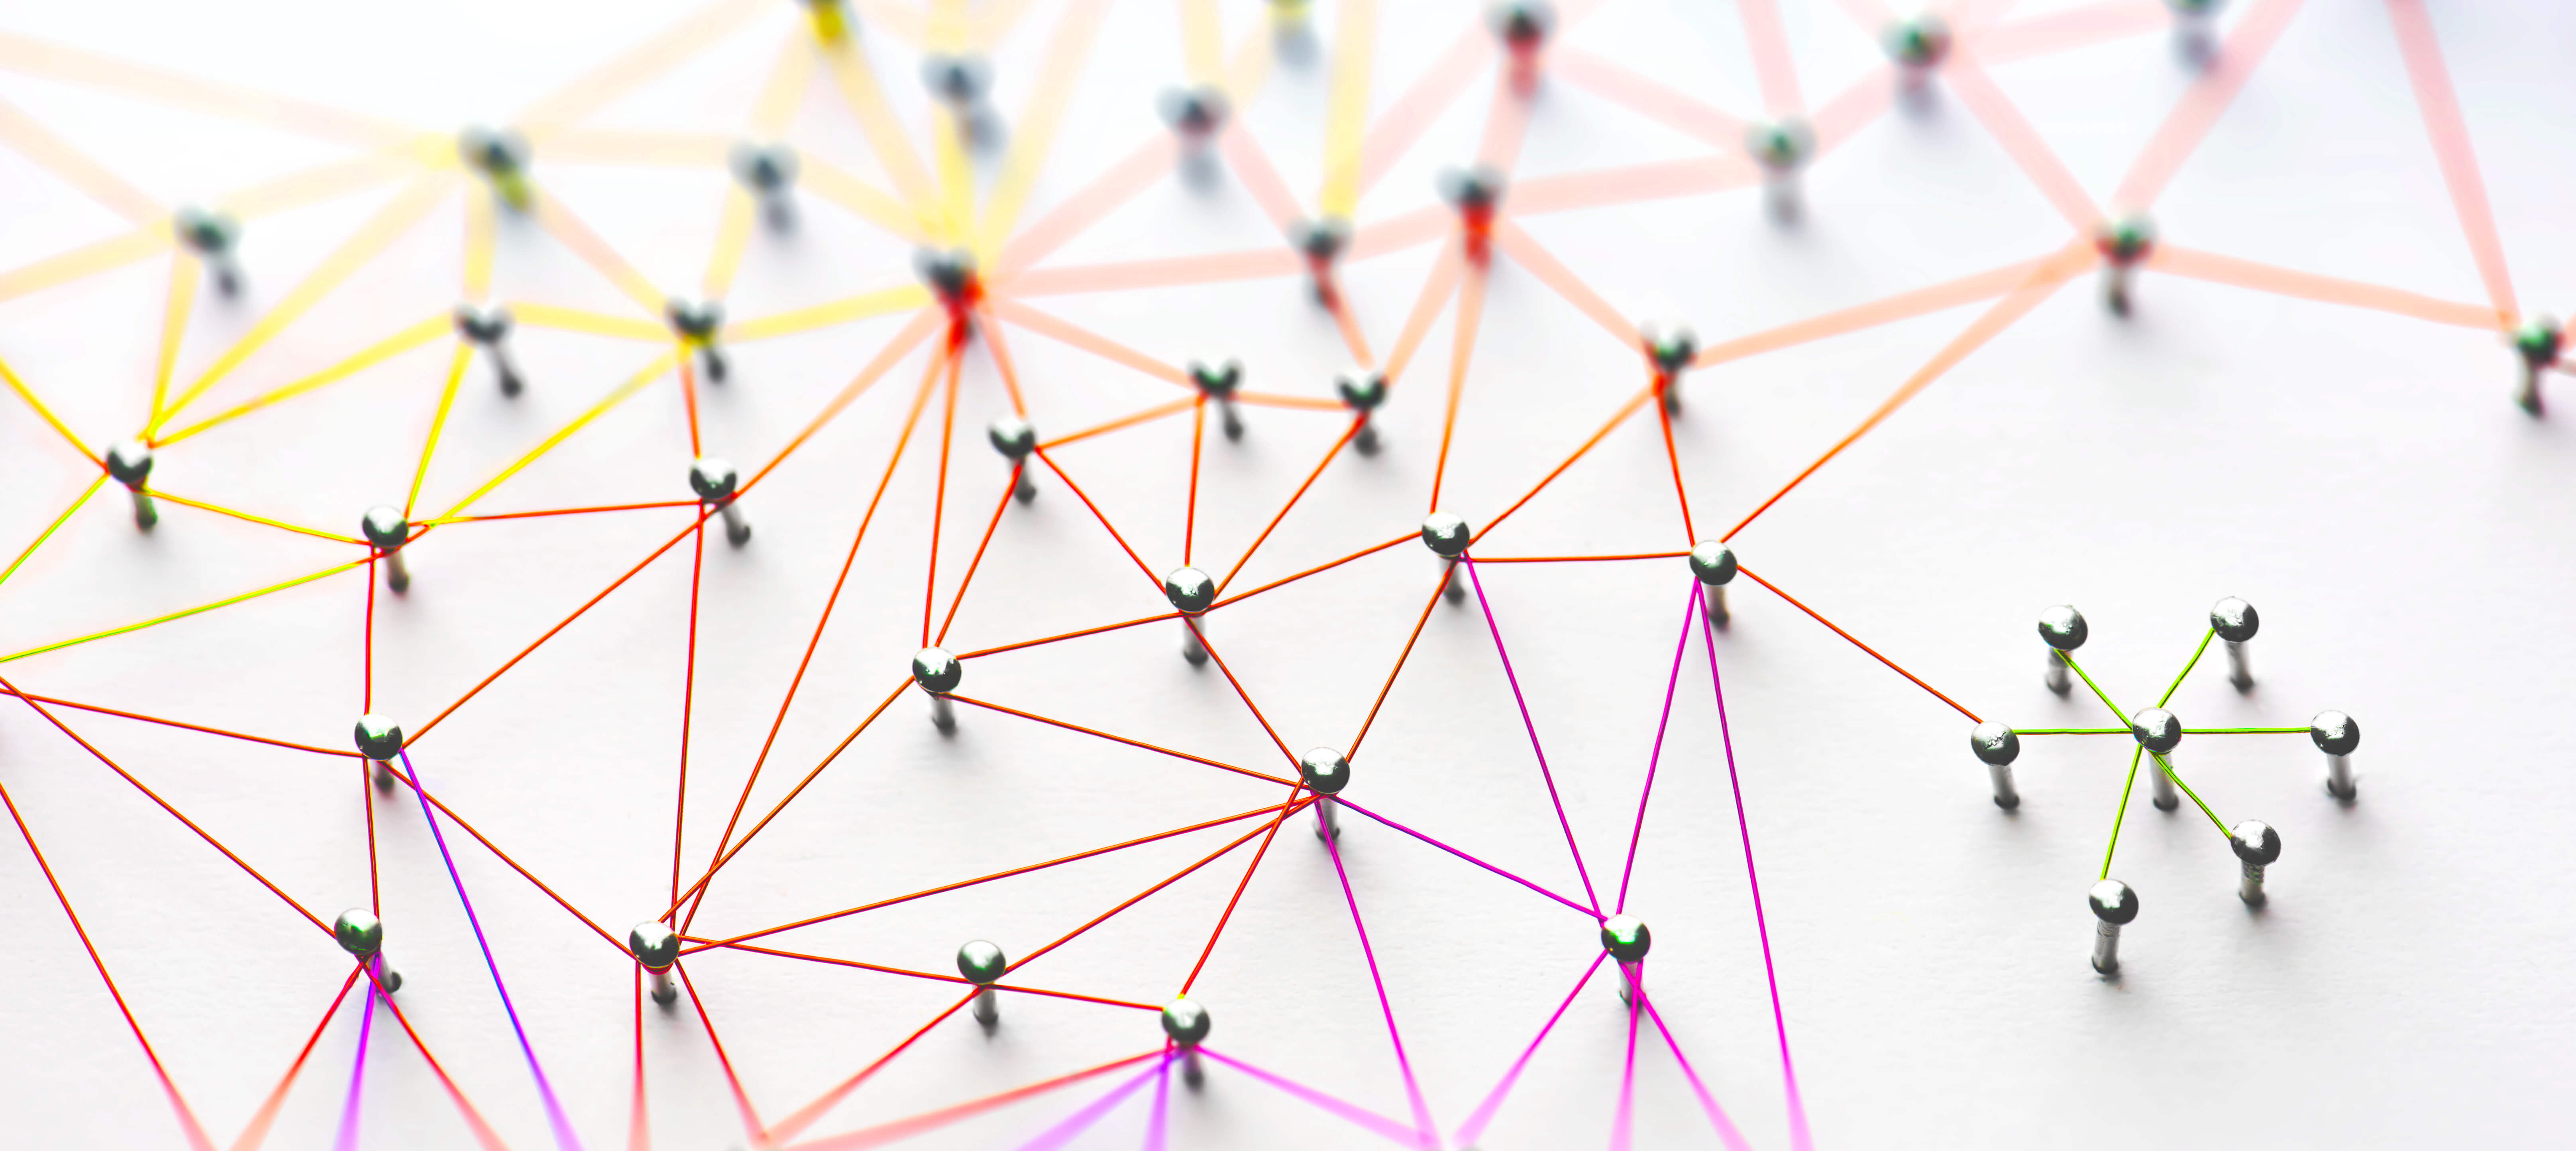 interconnected web